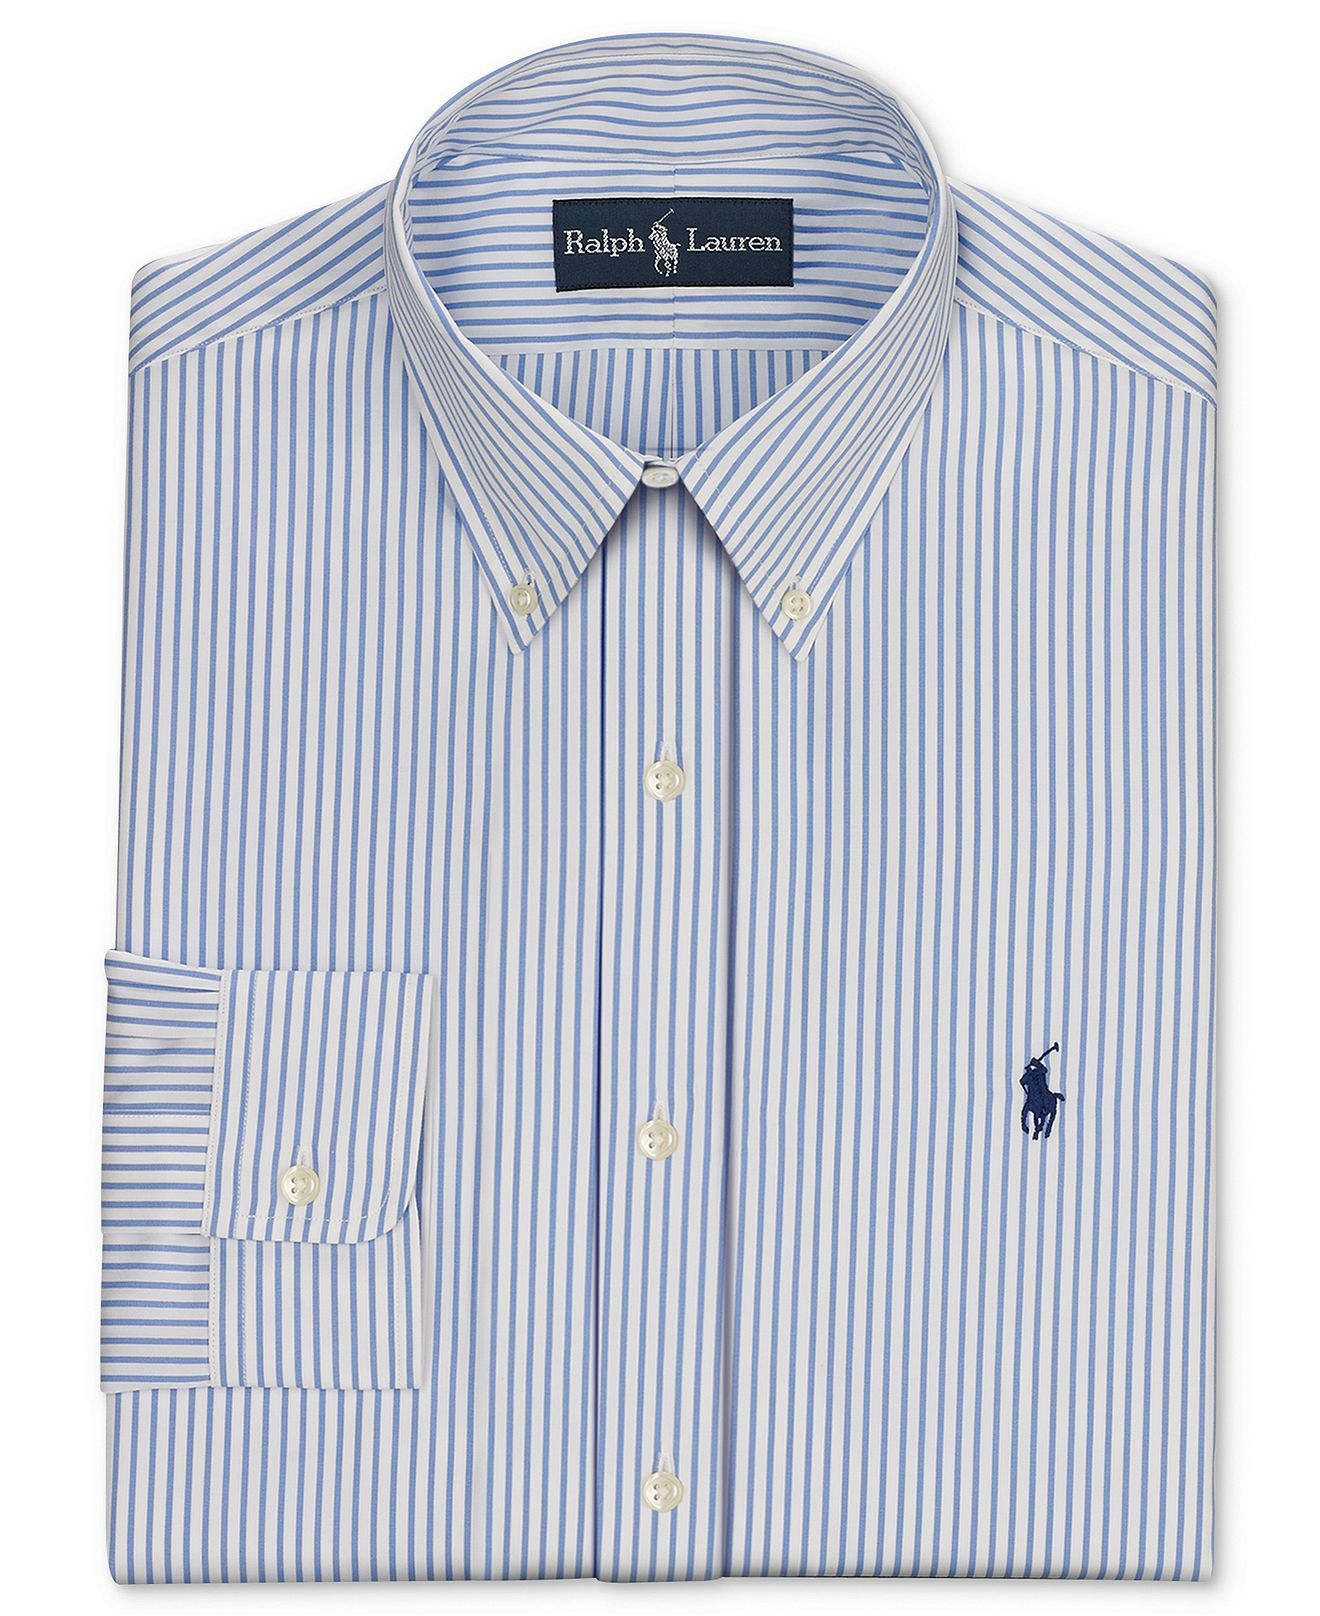 Polo Ralph Lauren Dress Shirt, Fitted Blue and White Stripe Long